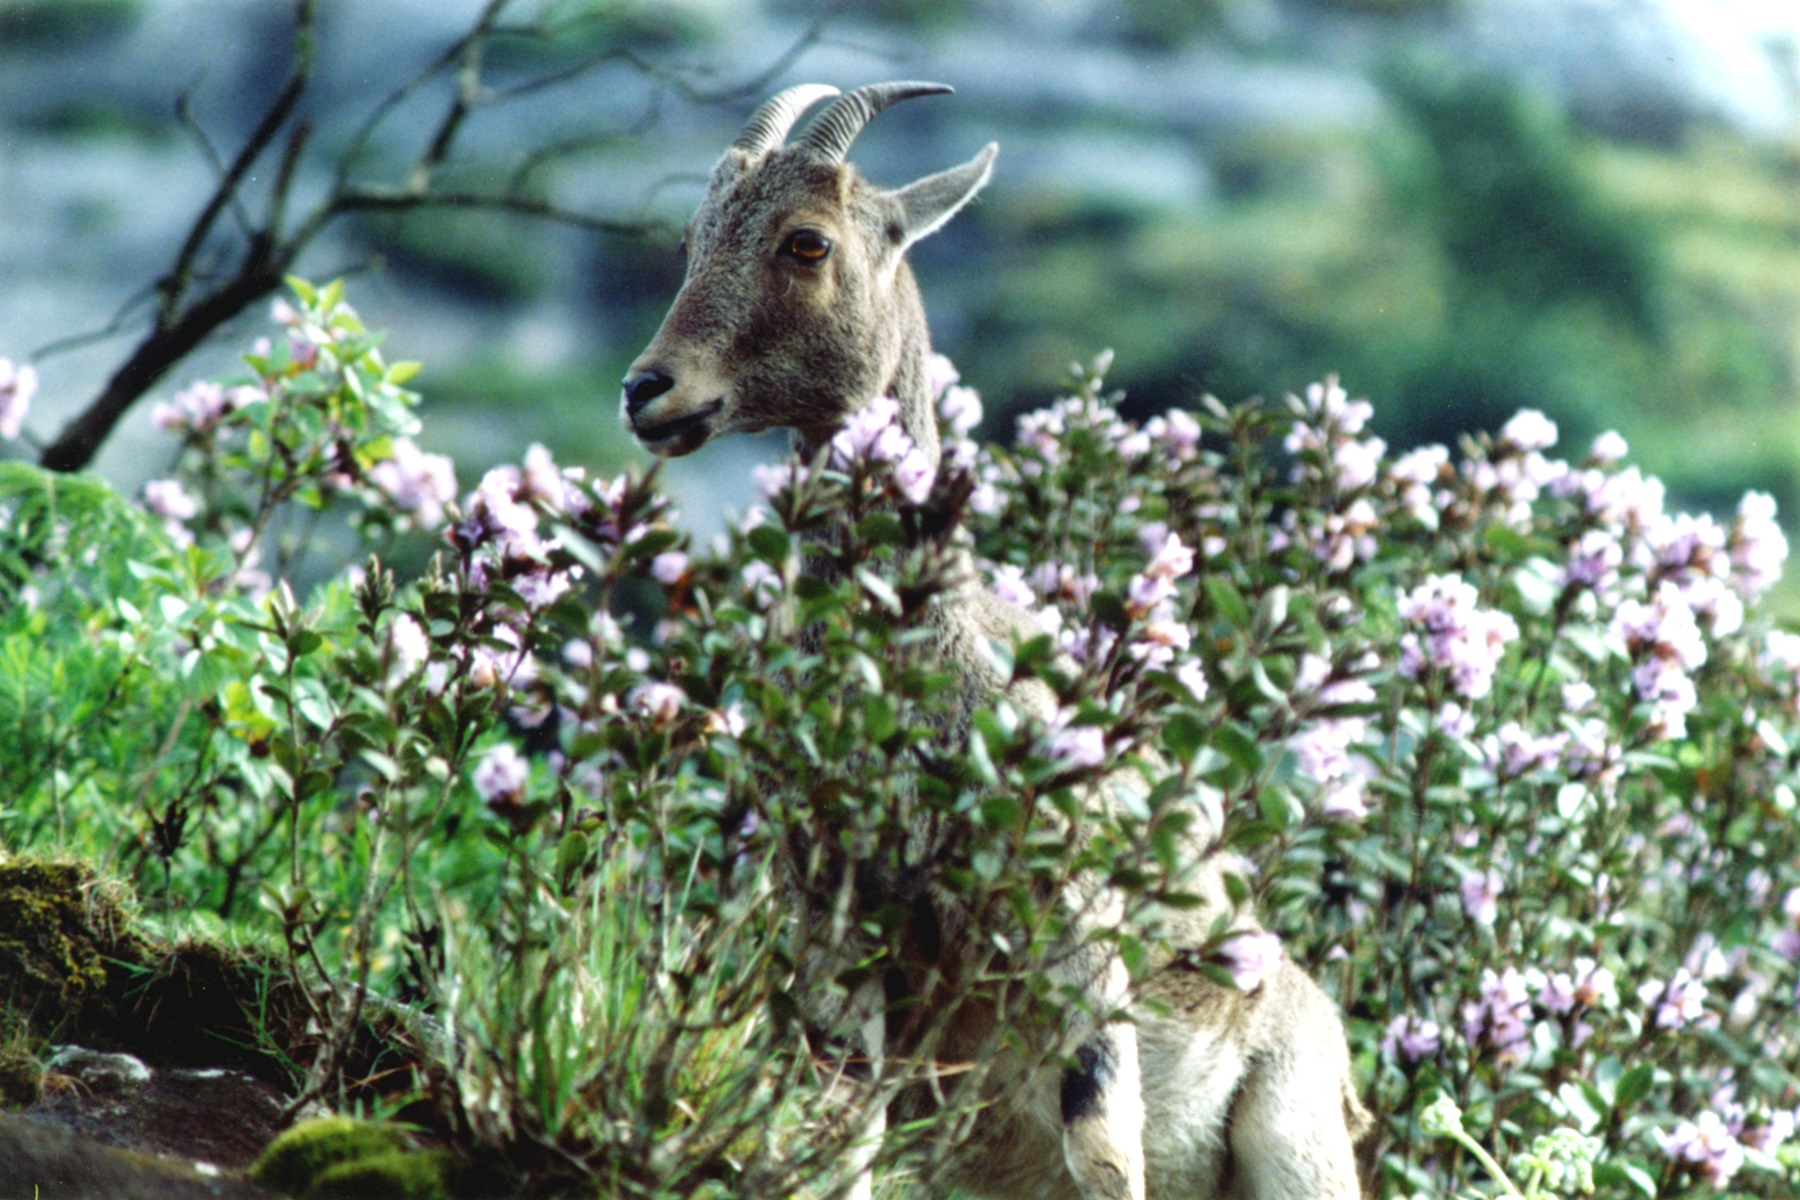 A Nilgiri tahr within the kurinji flowers in 2006. Photo Credit: Prasad Ambattu